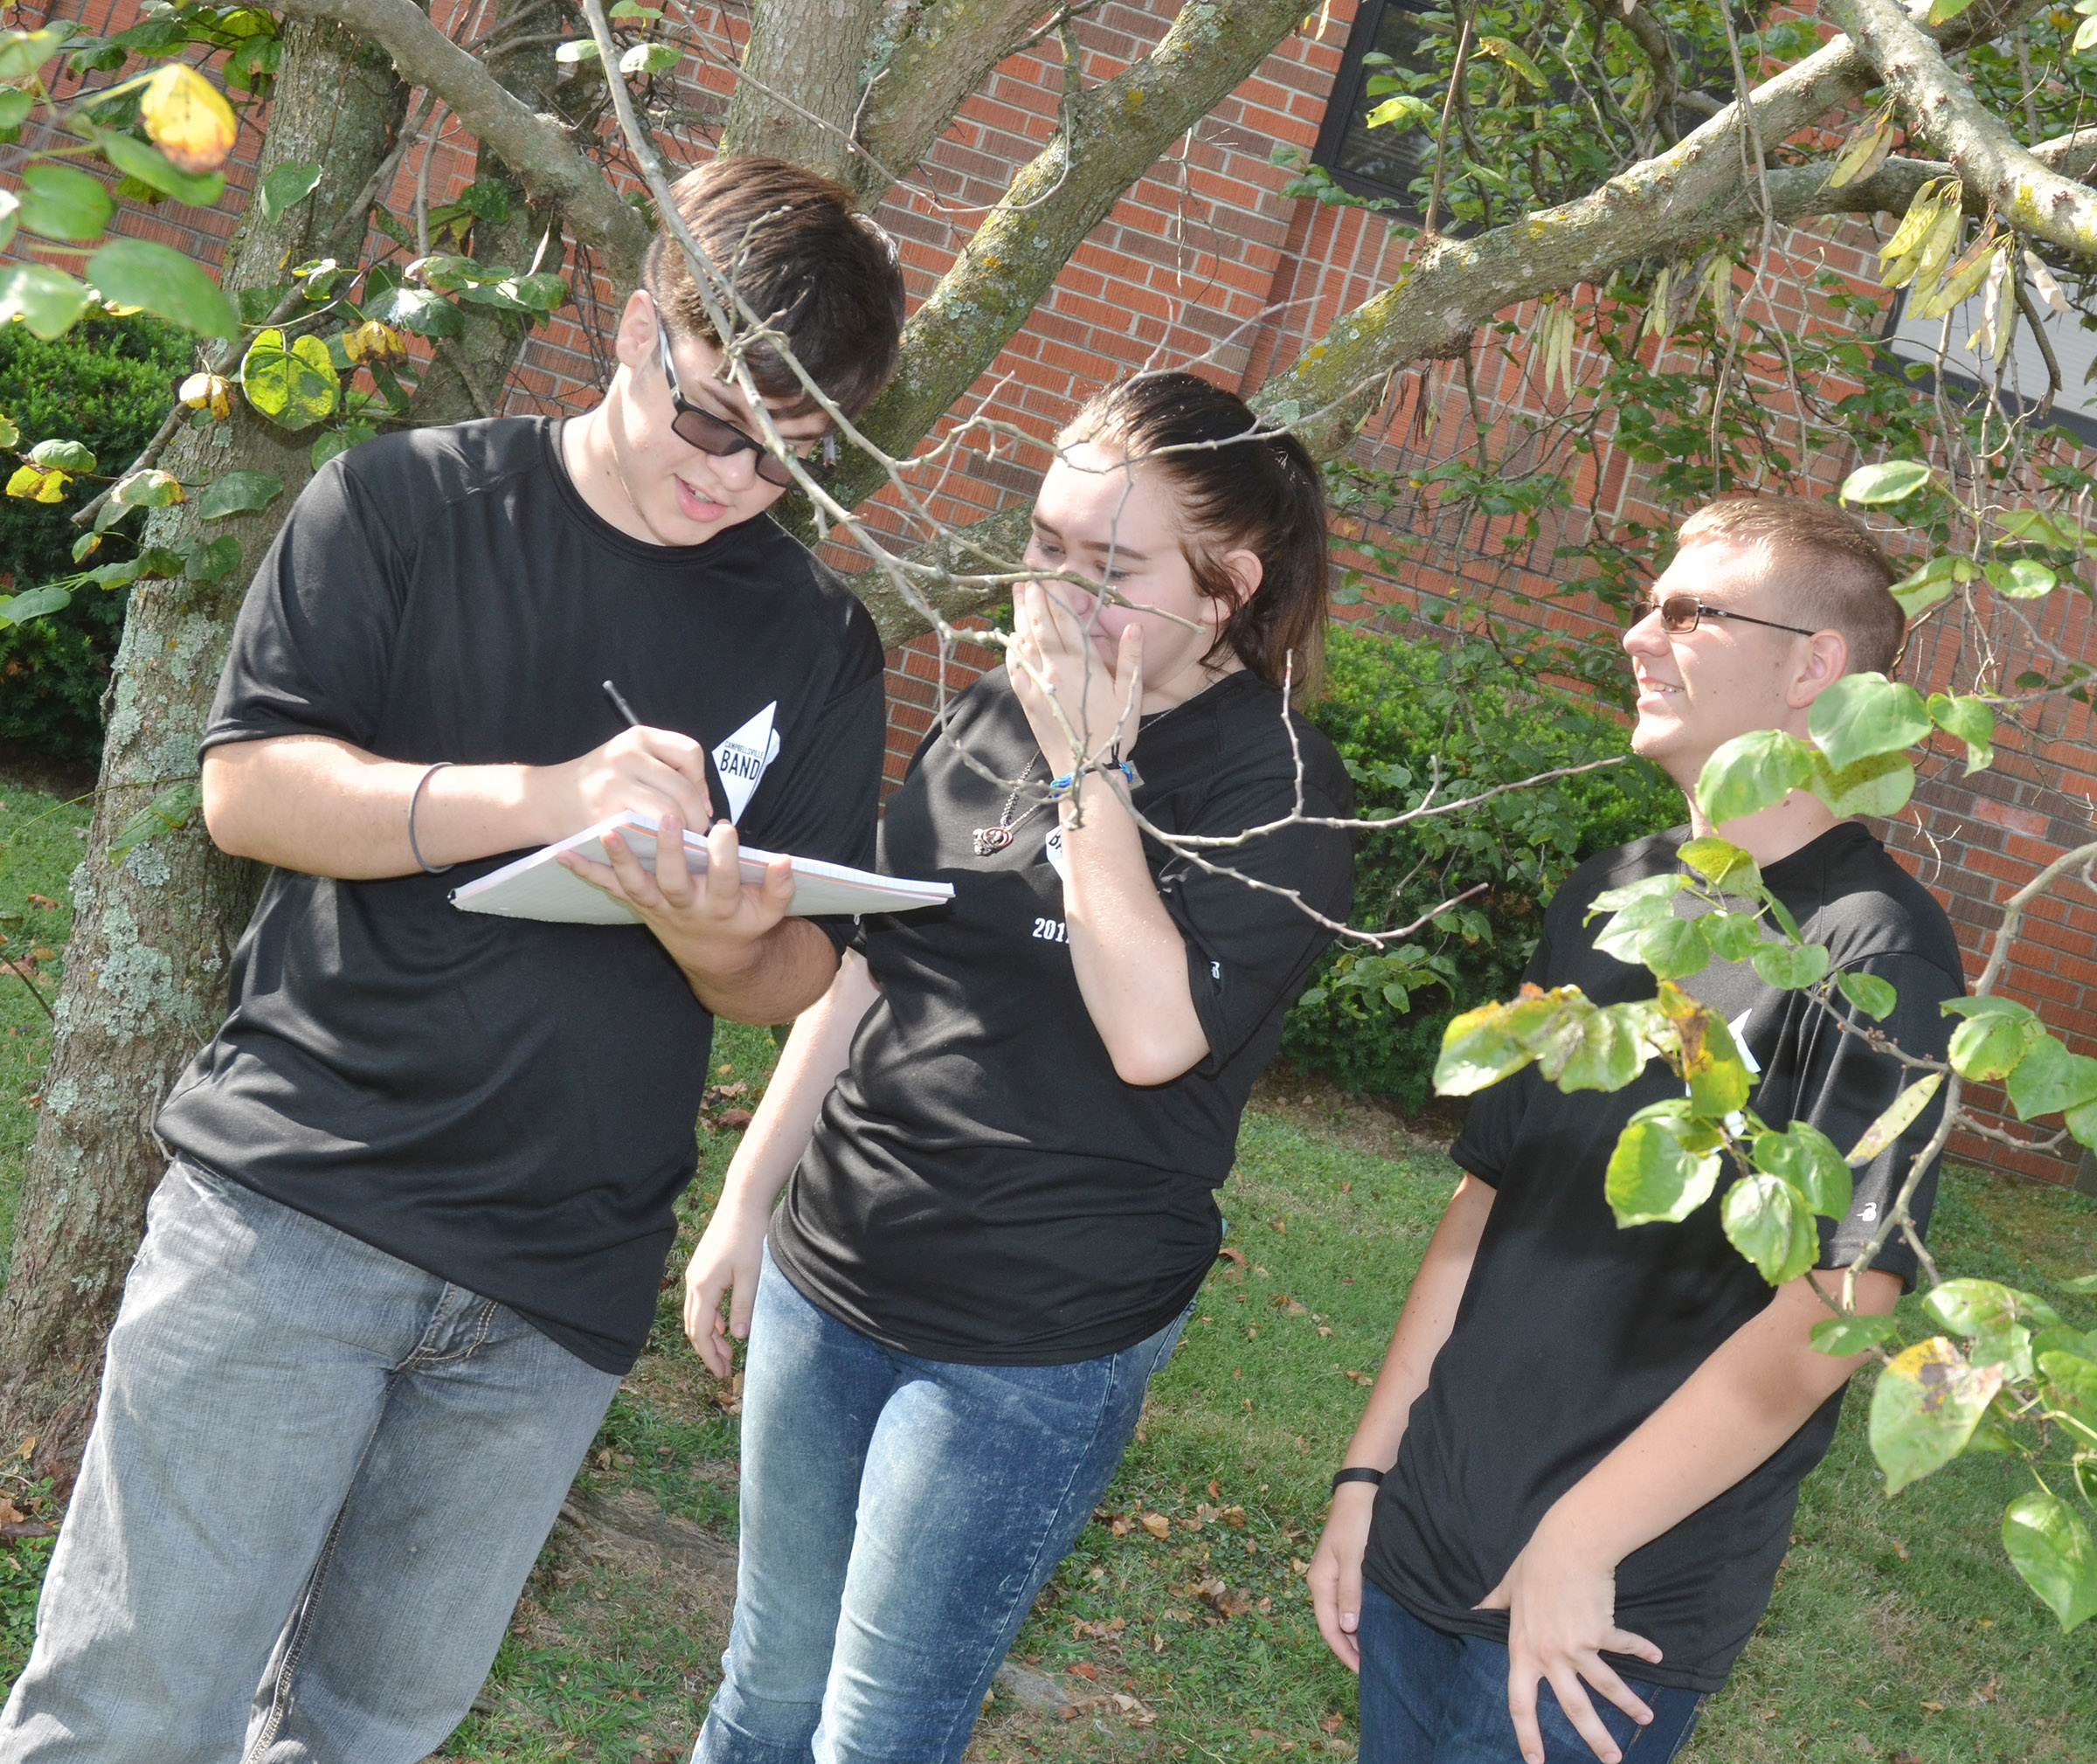 From left, CHS juniors Kyler Rakes, Leslie McKenzie and Brandon Greer work together to describe their surroundings as they study the concept of contextualization.